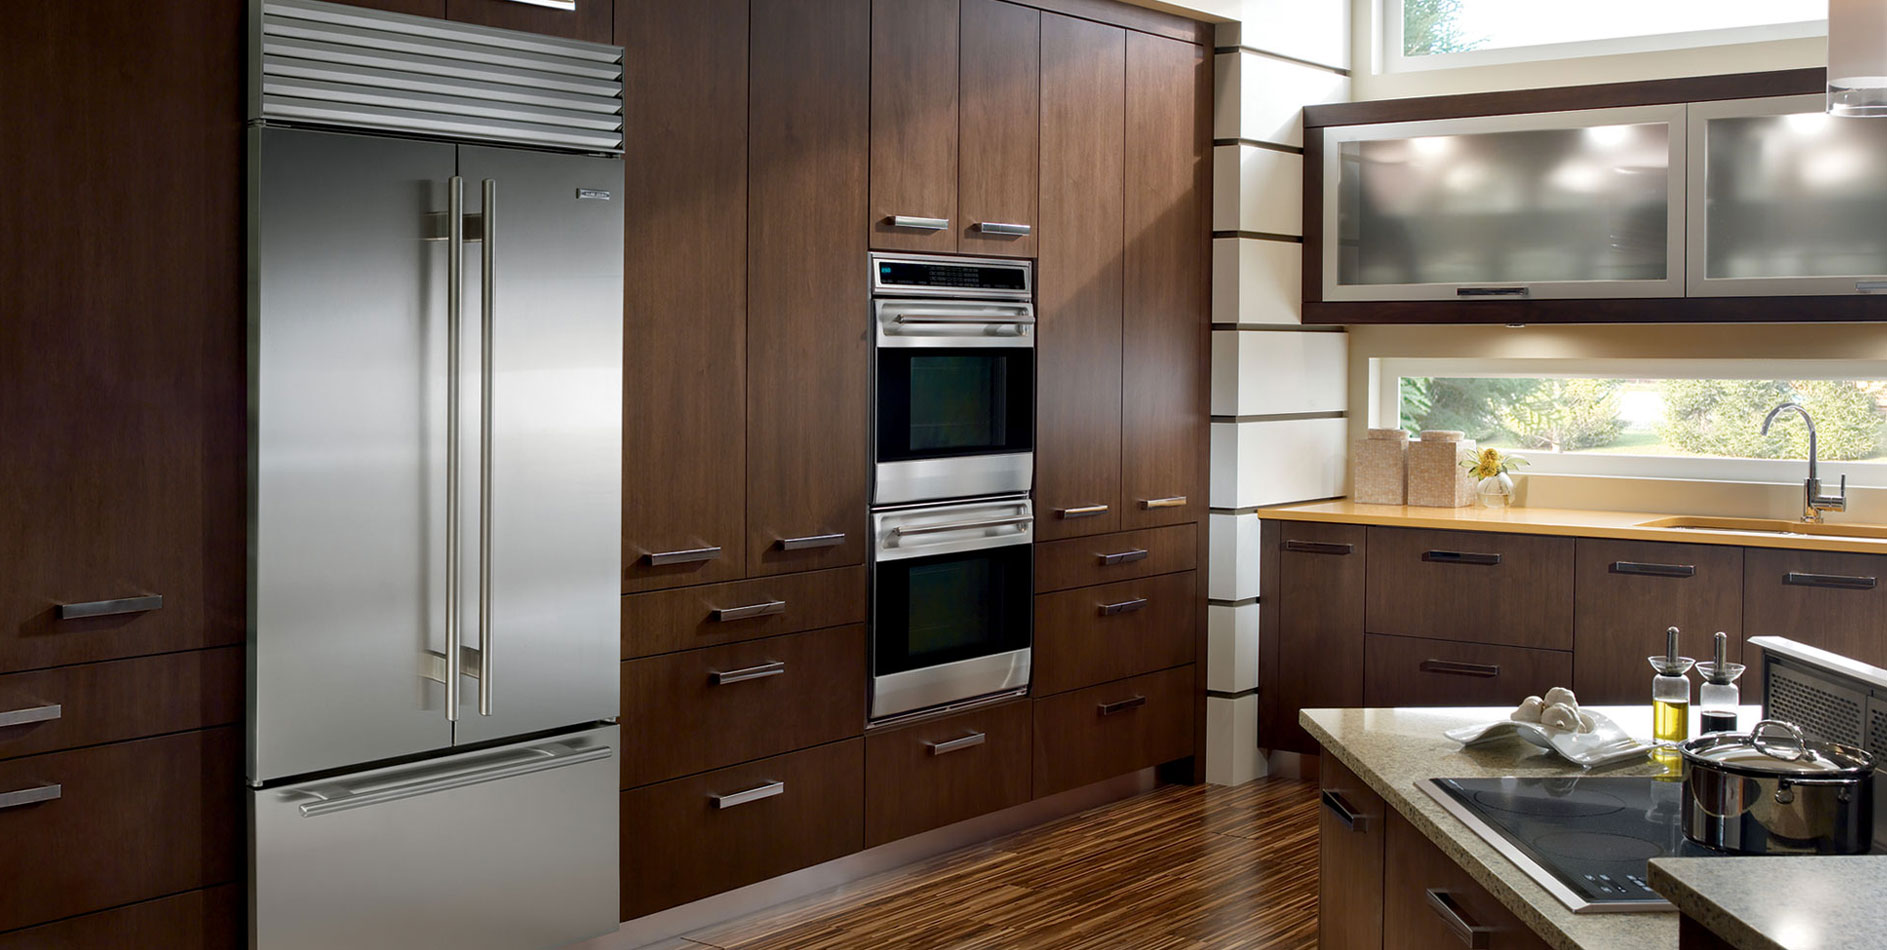 Kitchen cabinets bay ridge brooklyn - 24 7 Repair Service